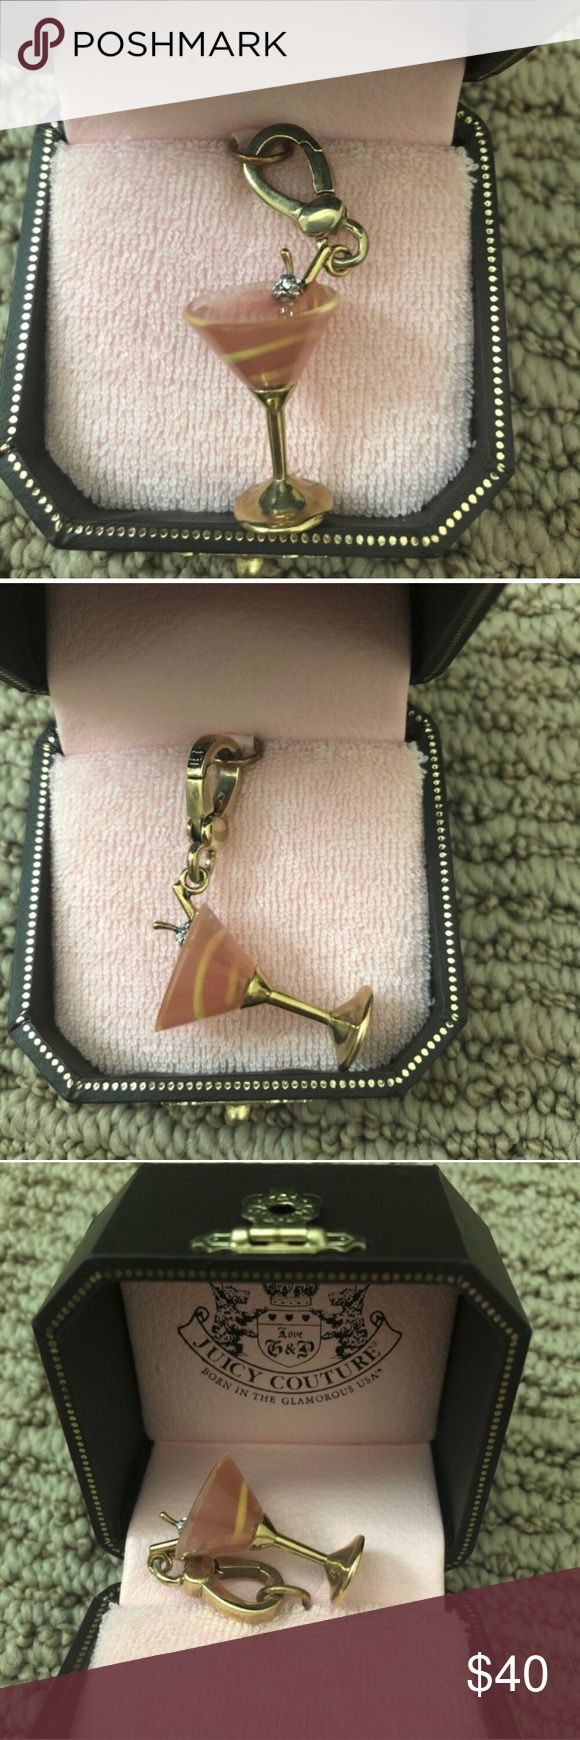 🍸 Juicy Couture Pink Martini Drink Charm 🍸Juicy Couture pink martini charm  🍸BRAND NEW in tagged box 🍸Has a swirl of lemon inside and a tiny crystals cherry; all stones are intact  ‼️Price is FIRM, please remember the posh fees. NO trades‼️ Juicy Couture Jewelry